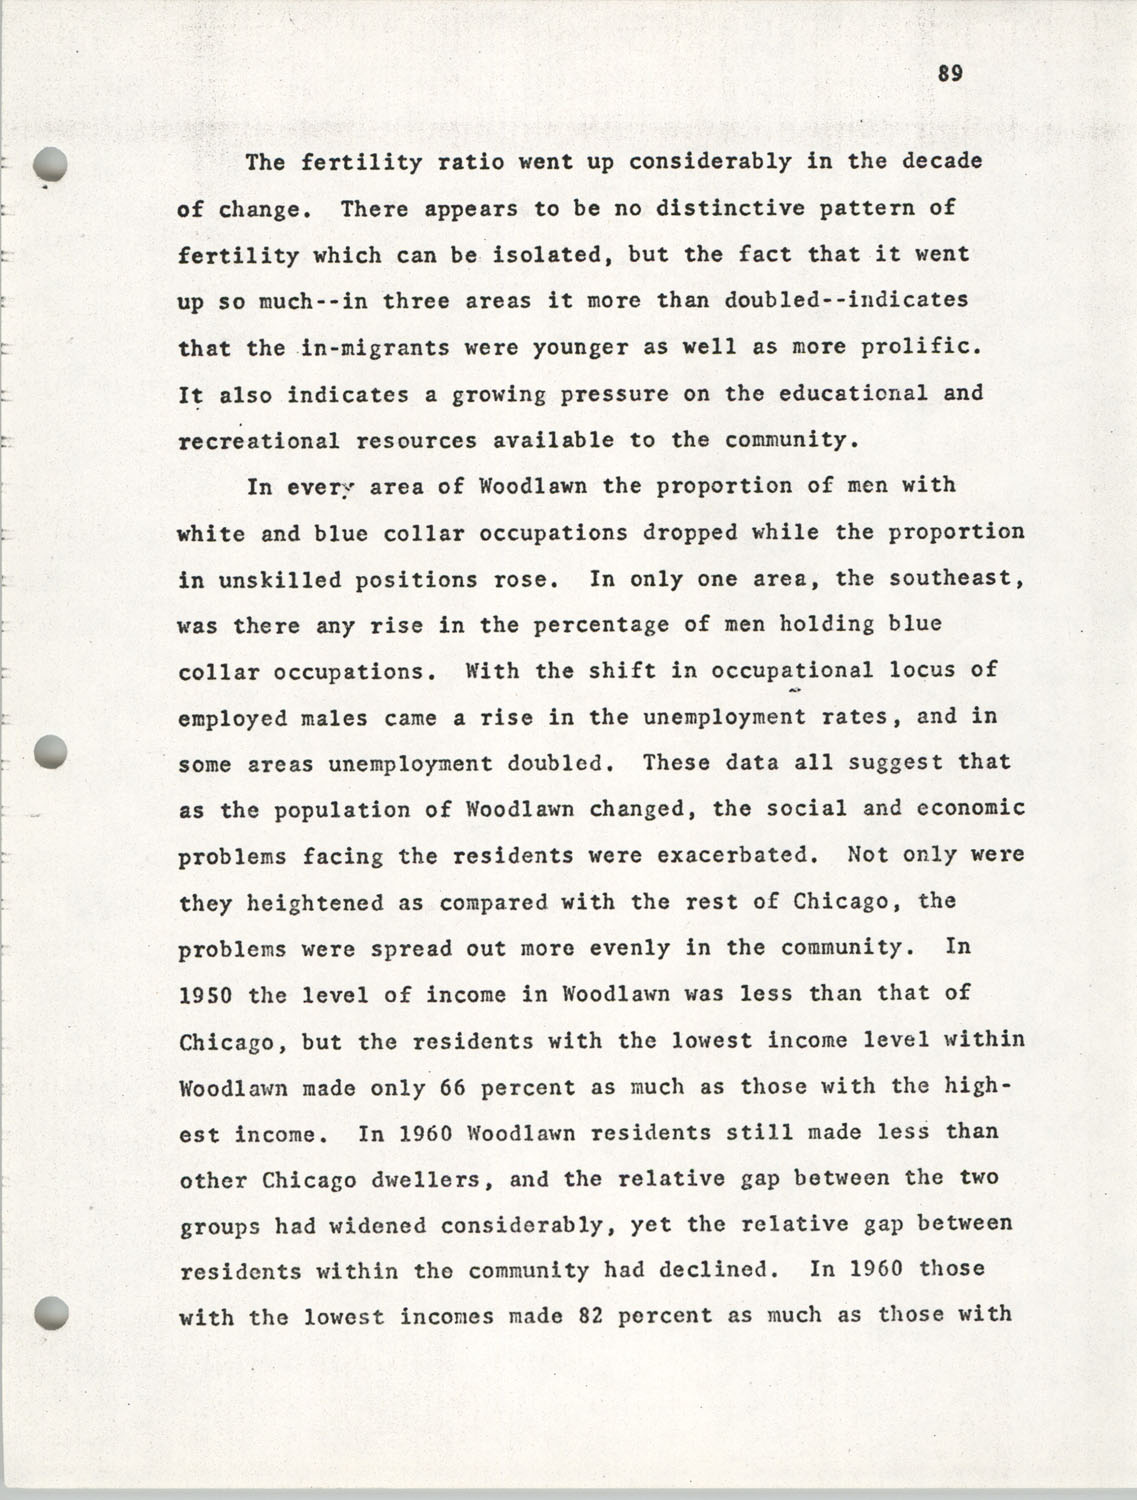 Citizen Participation. Democracy and Social Change, December 1, 1969, Page 89